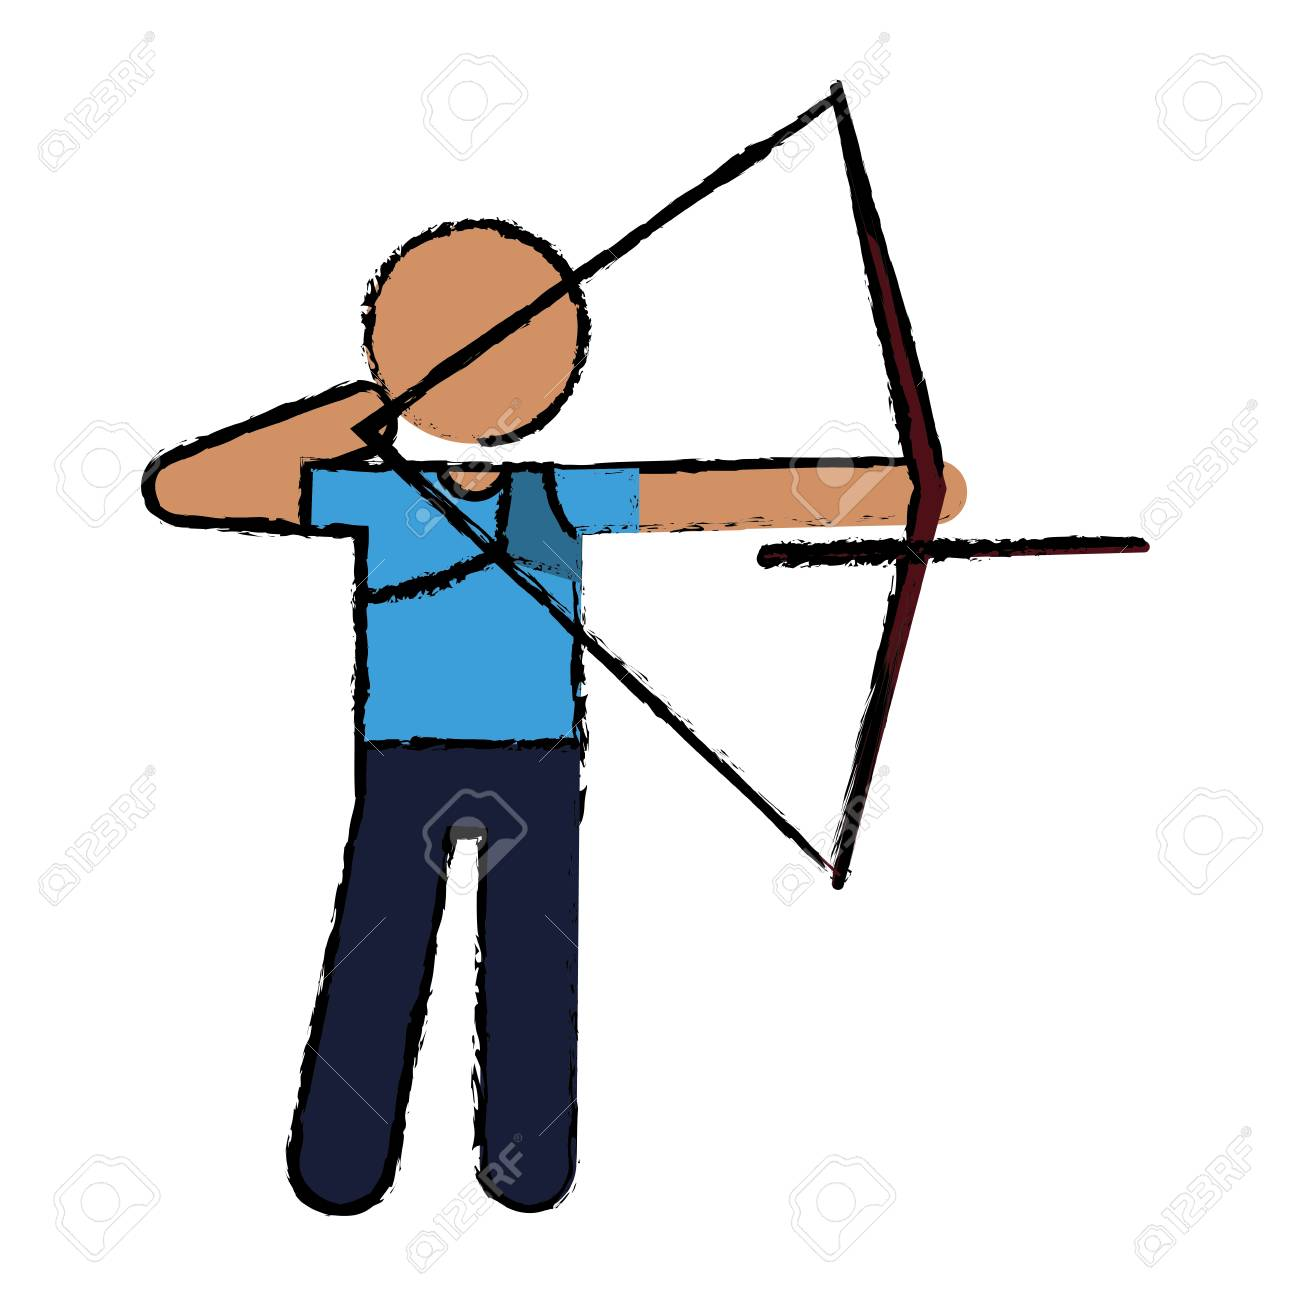 1300x1300 Drawing Archery Player Aiming Bow Game Vector Illustration Eps